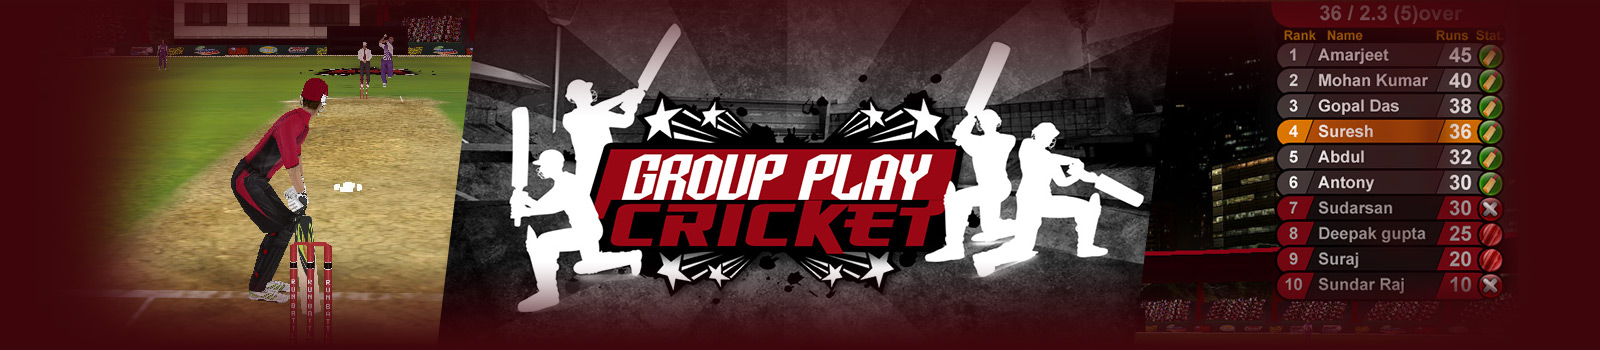 Group Play Cricket